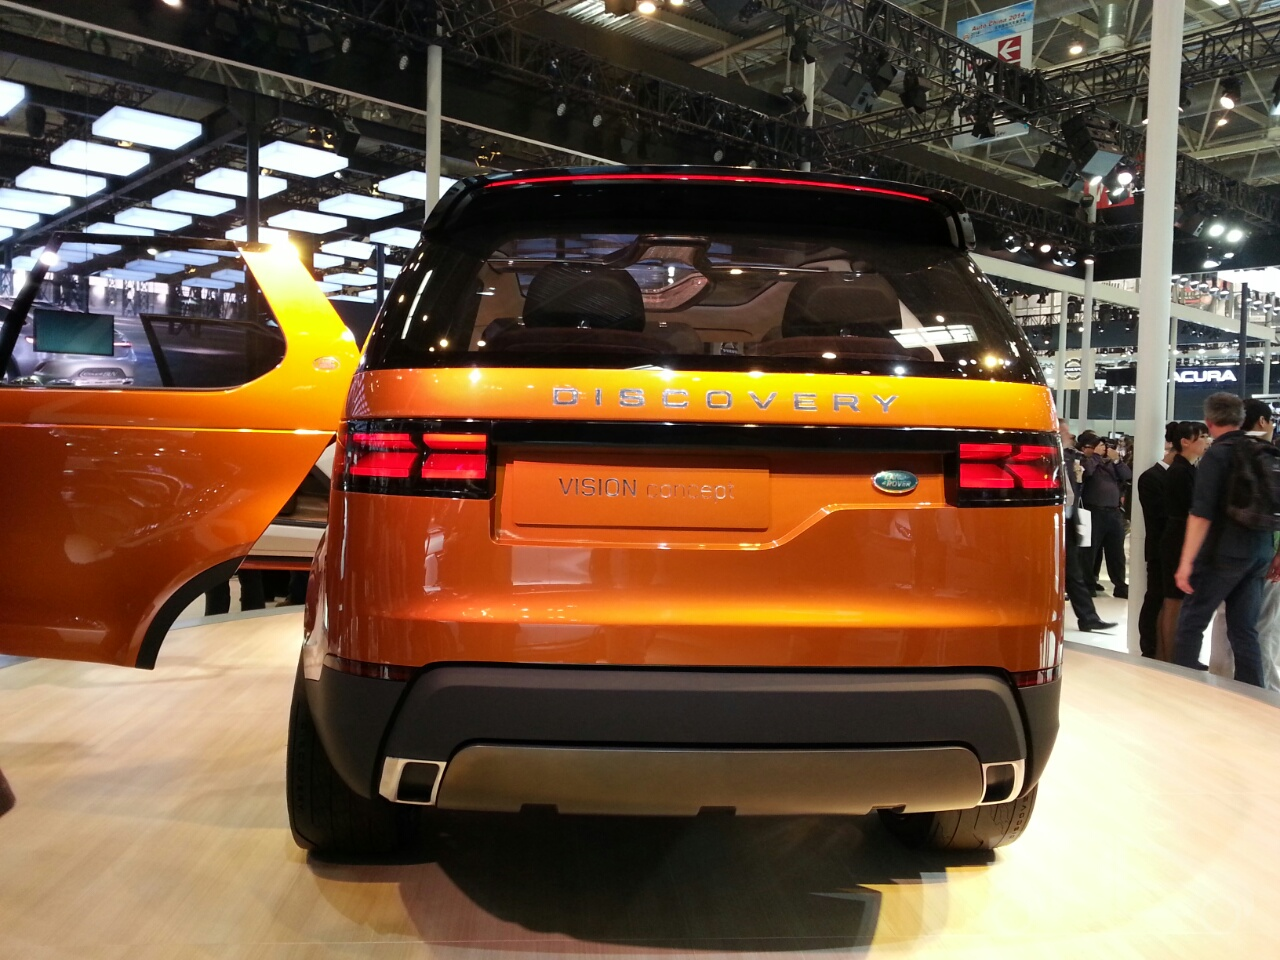 Land Rover Discovery Vision Concept rear at Auto China 2014